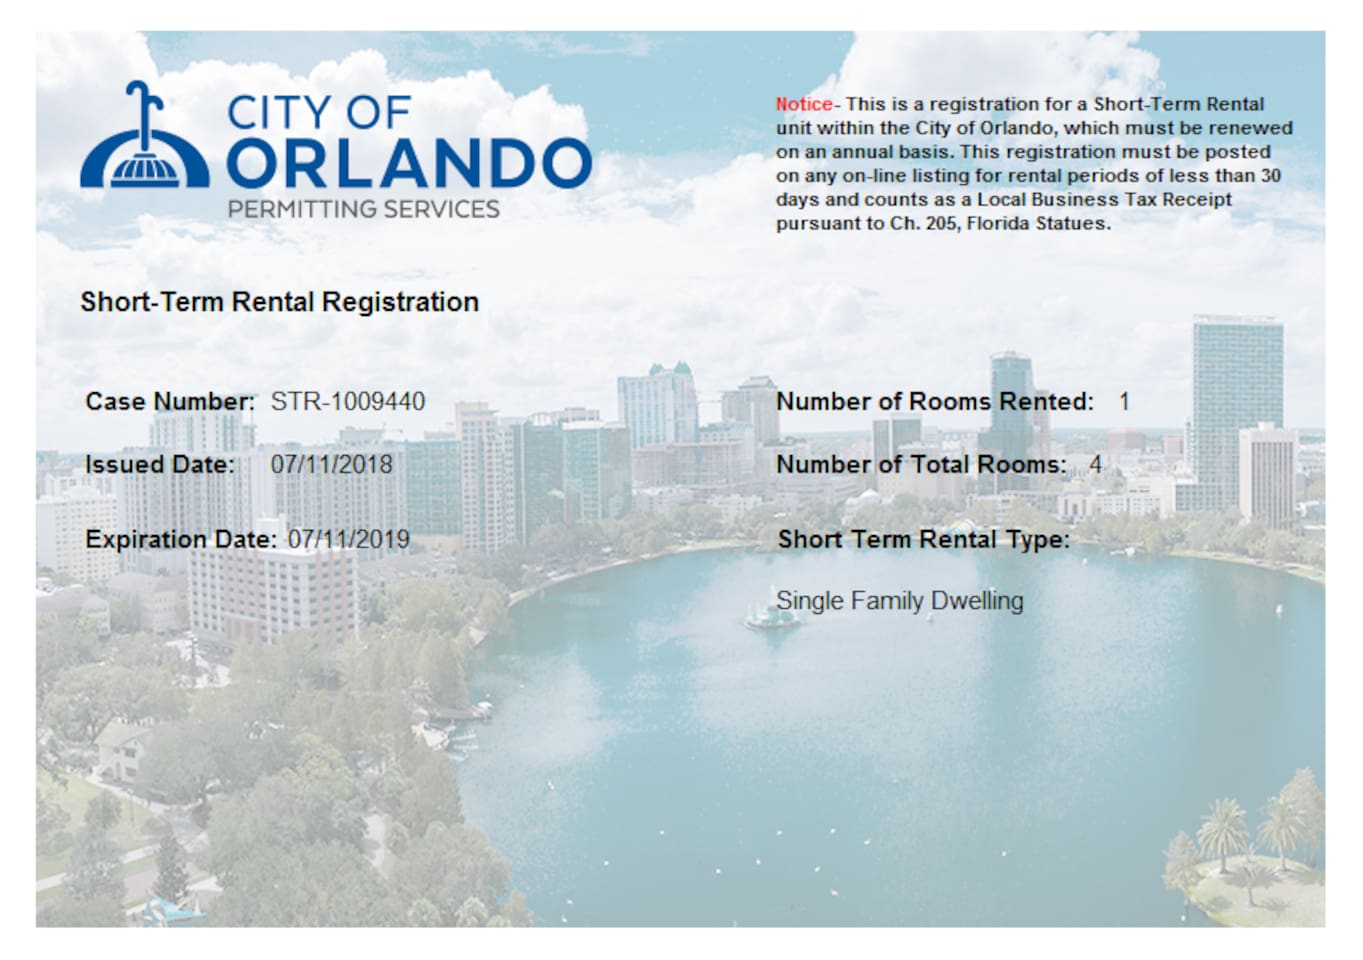 City of Orlando Registration